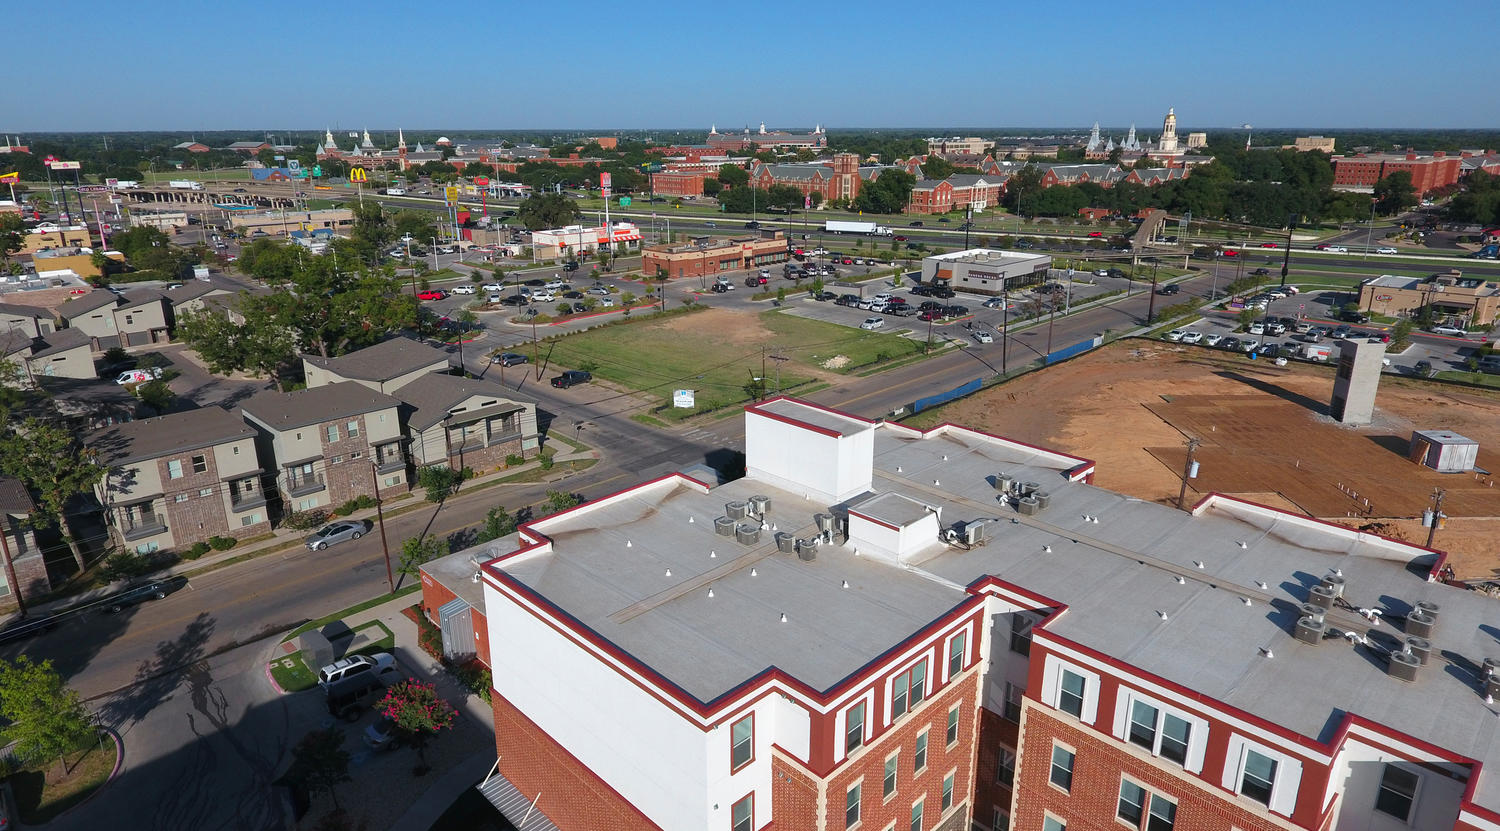 805 South 8th Street West-large-041-25-Elevated View of Baylor Campus-1500x831-72dpi.jpg